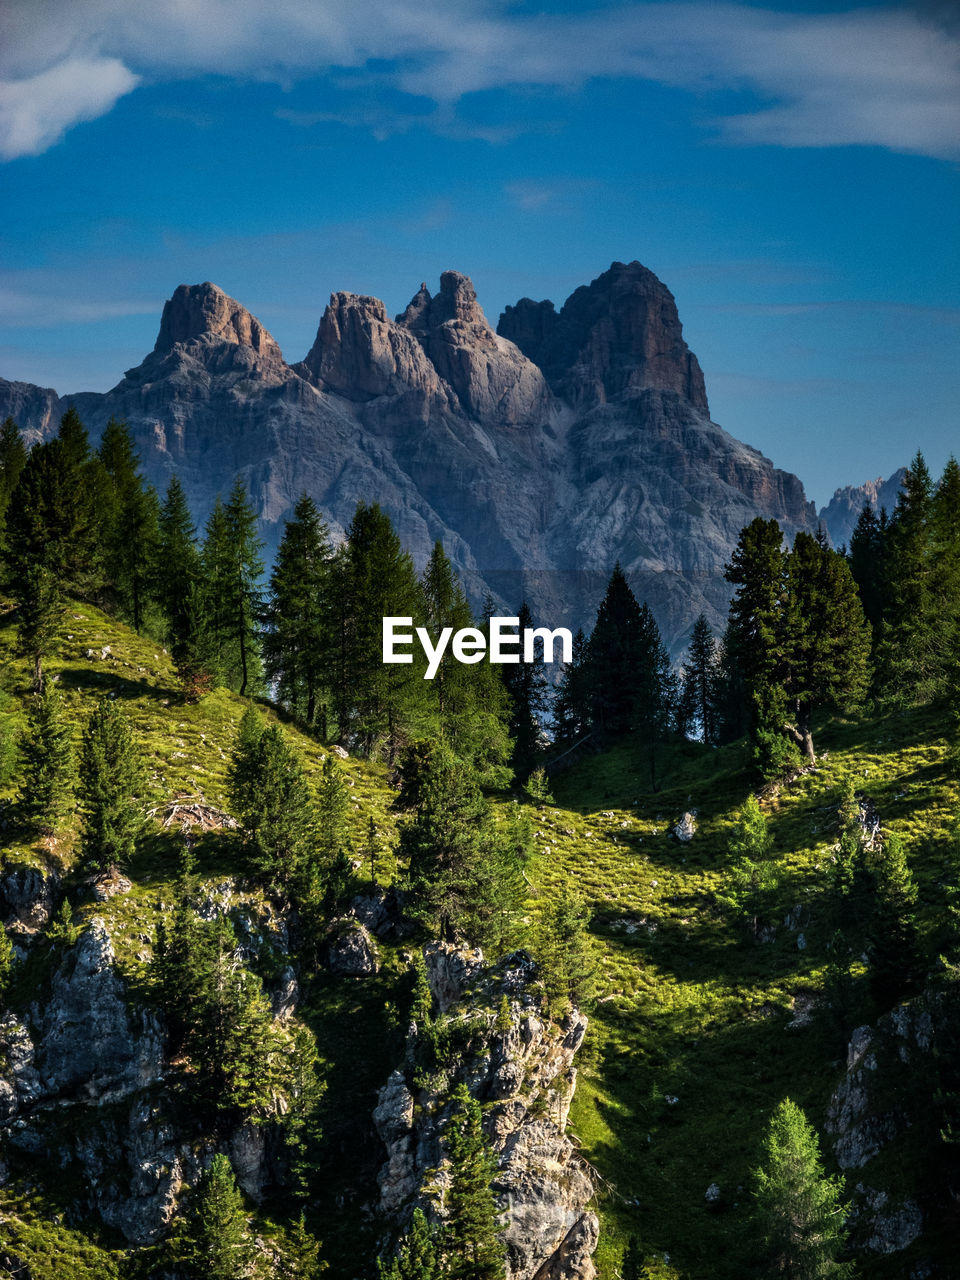 mountain, beauty in nature, sky, tree, plant, scenics - nature, tranquil scene, tranquility, mountain range, nature, green color, landscape, environment, non-urban scene, idyllic, land, no people, growth, rock, day, formation, outdoors, mountain peak, coniferous tree